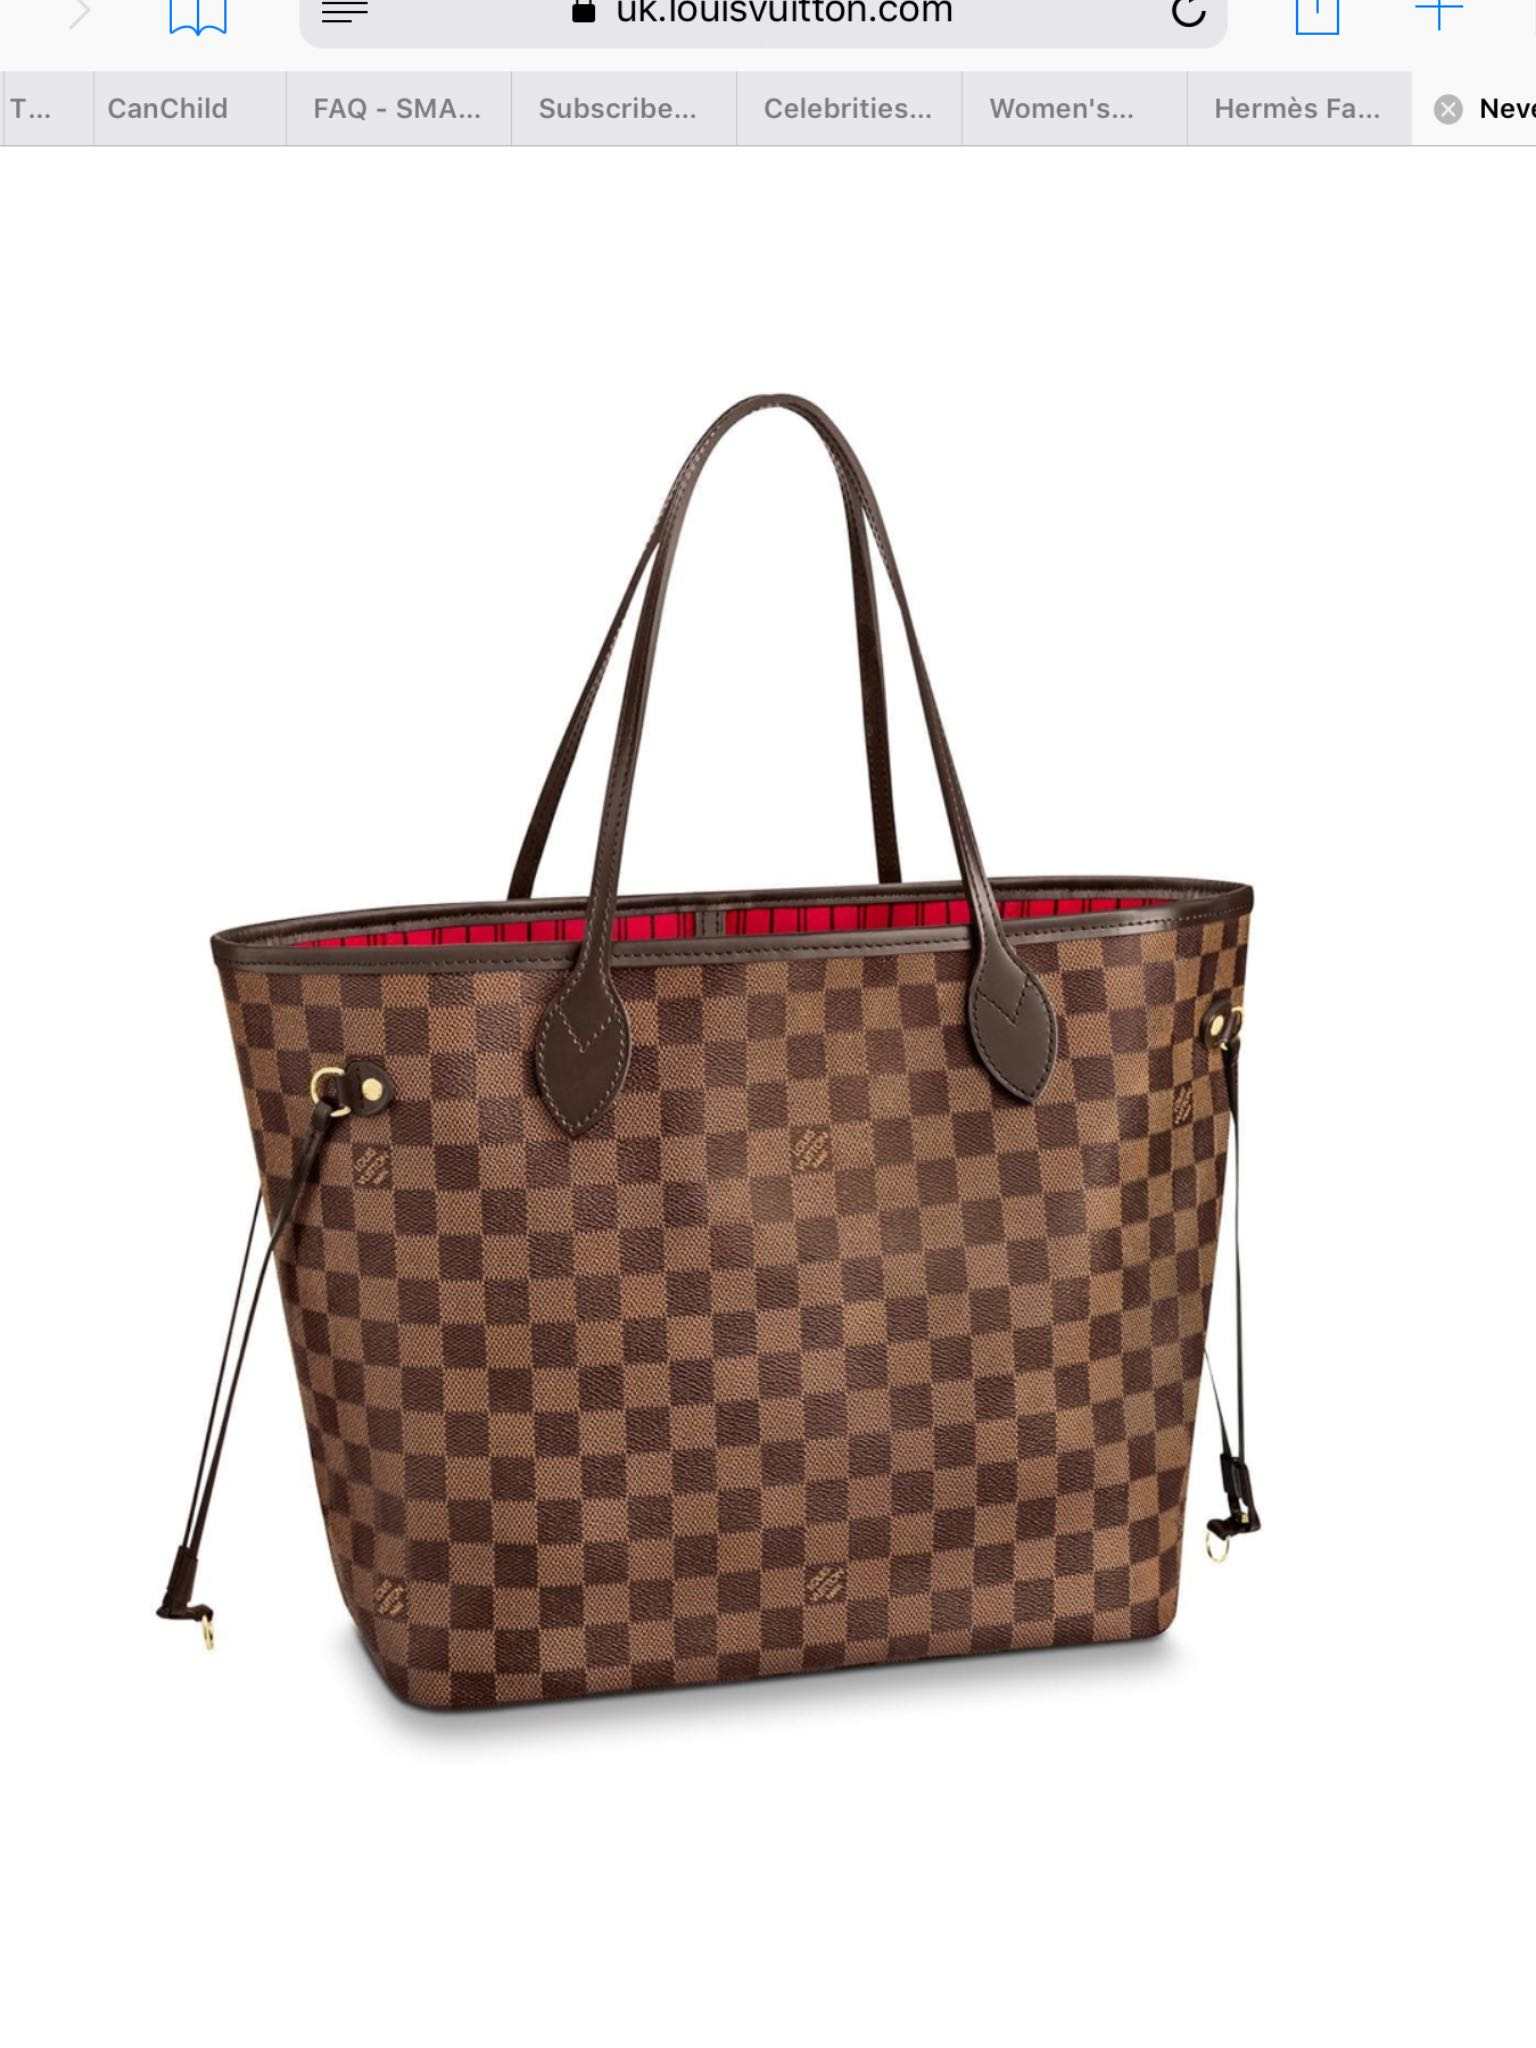 86447c1c4c1c 100% Authentic Louis Vuitton Damier Ebene Neverfull MM